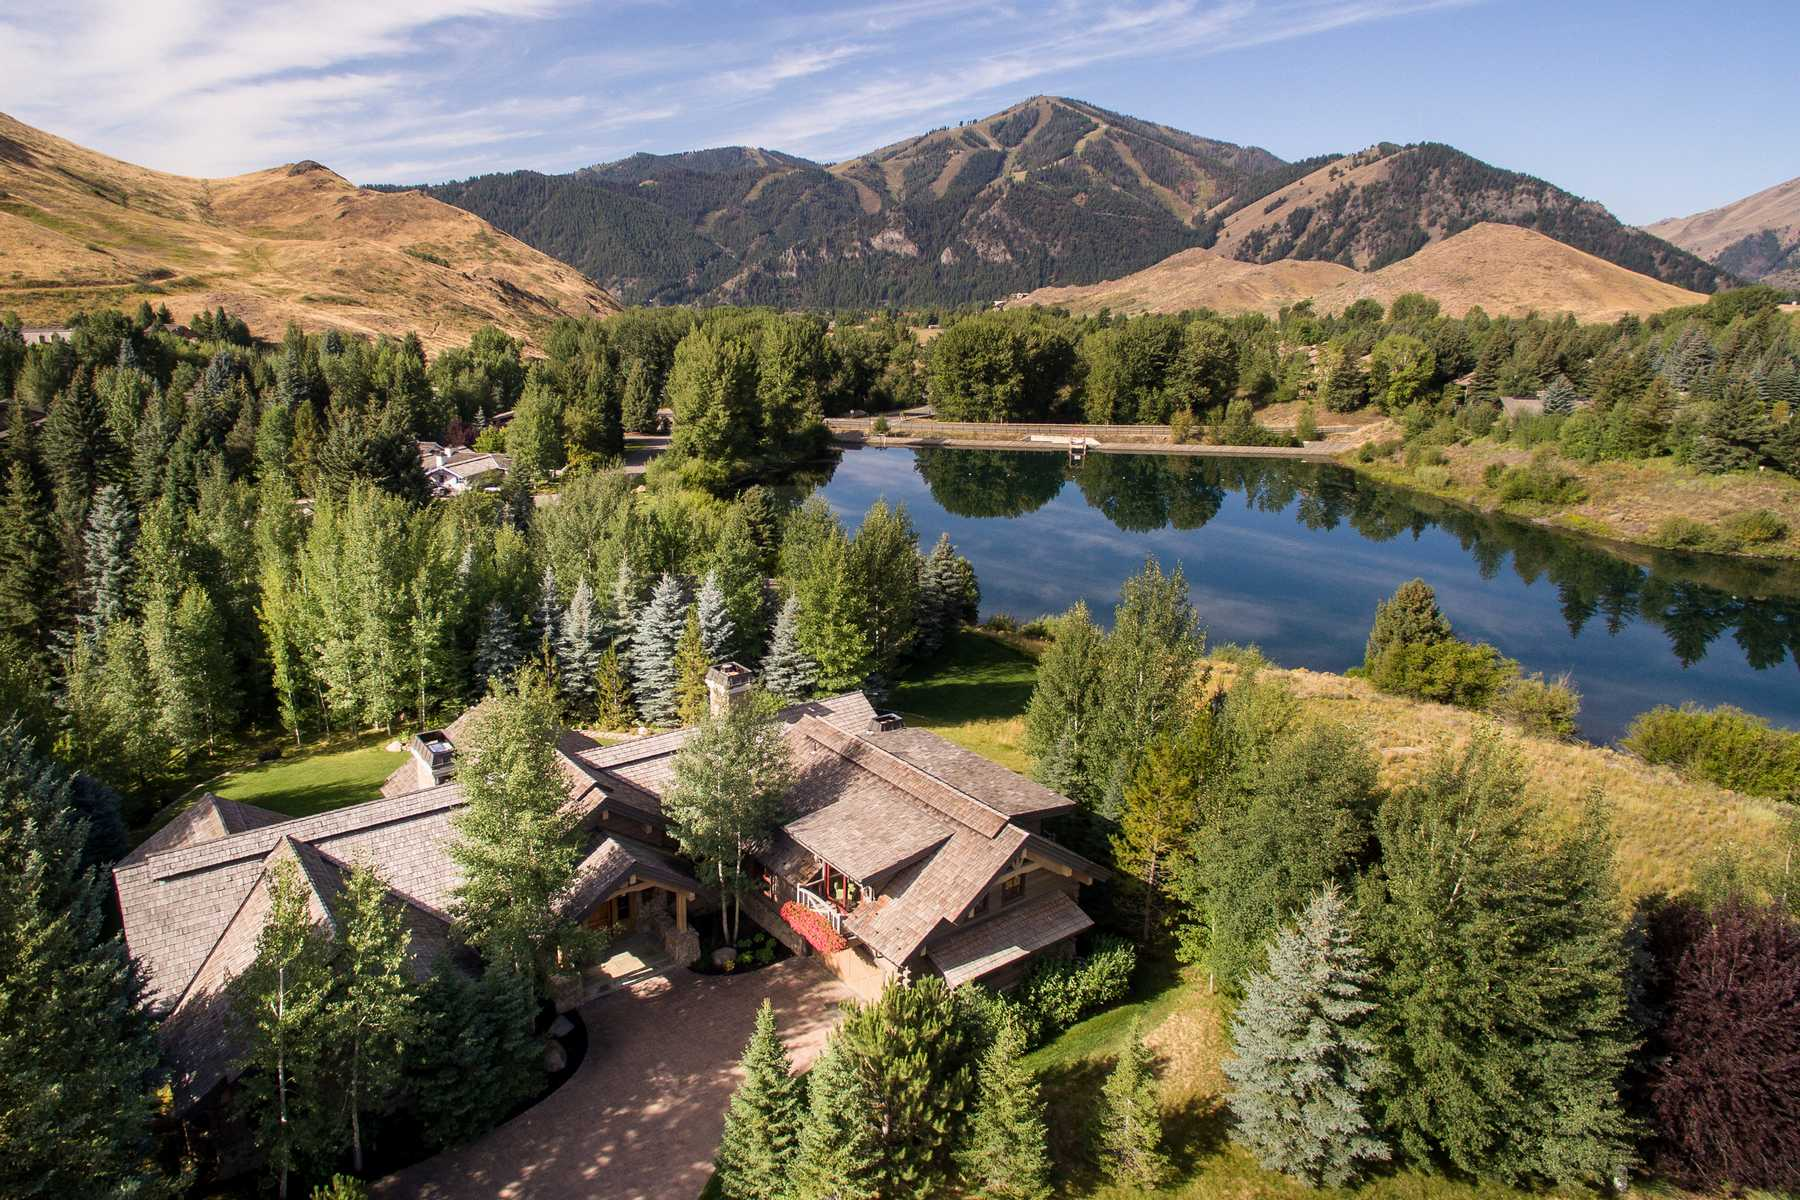 Single Family Home for Sale at Overlooking the Lake Sun Valley, Idaho 83353 United States